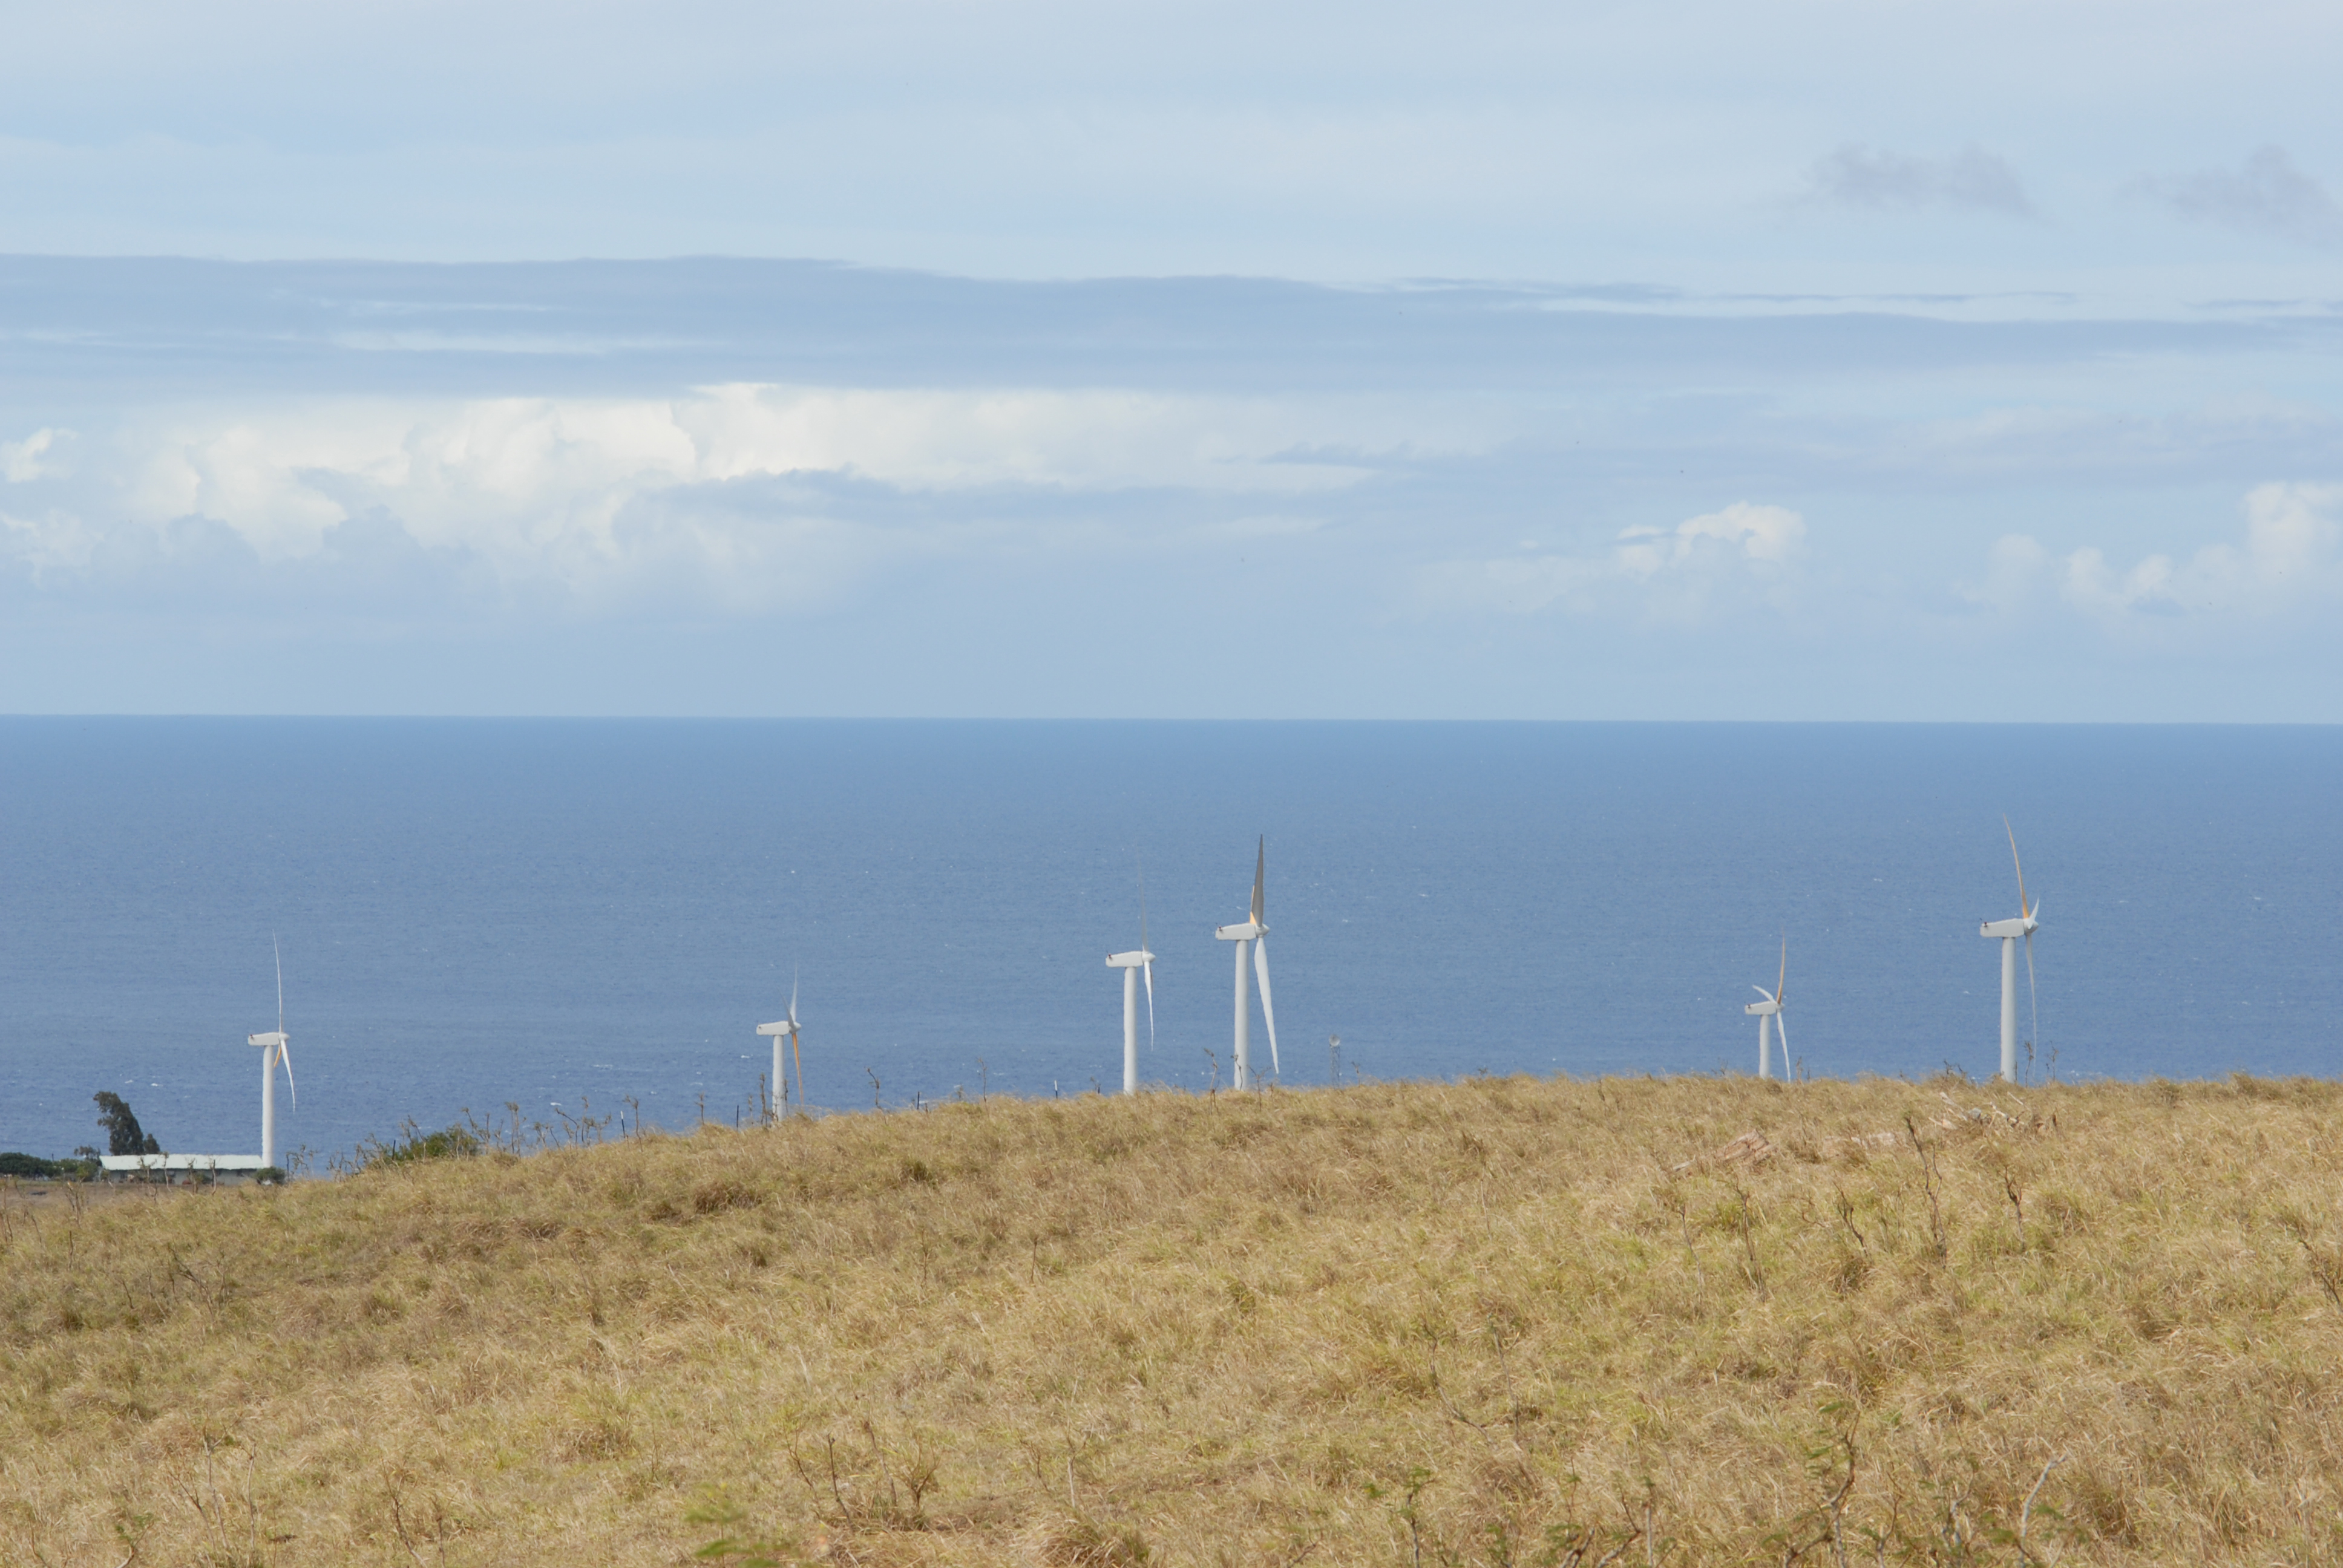 Windmills near Hawi, Hawaii: photo by Jay Torborg